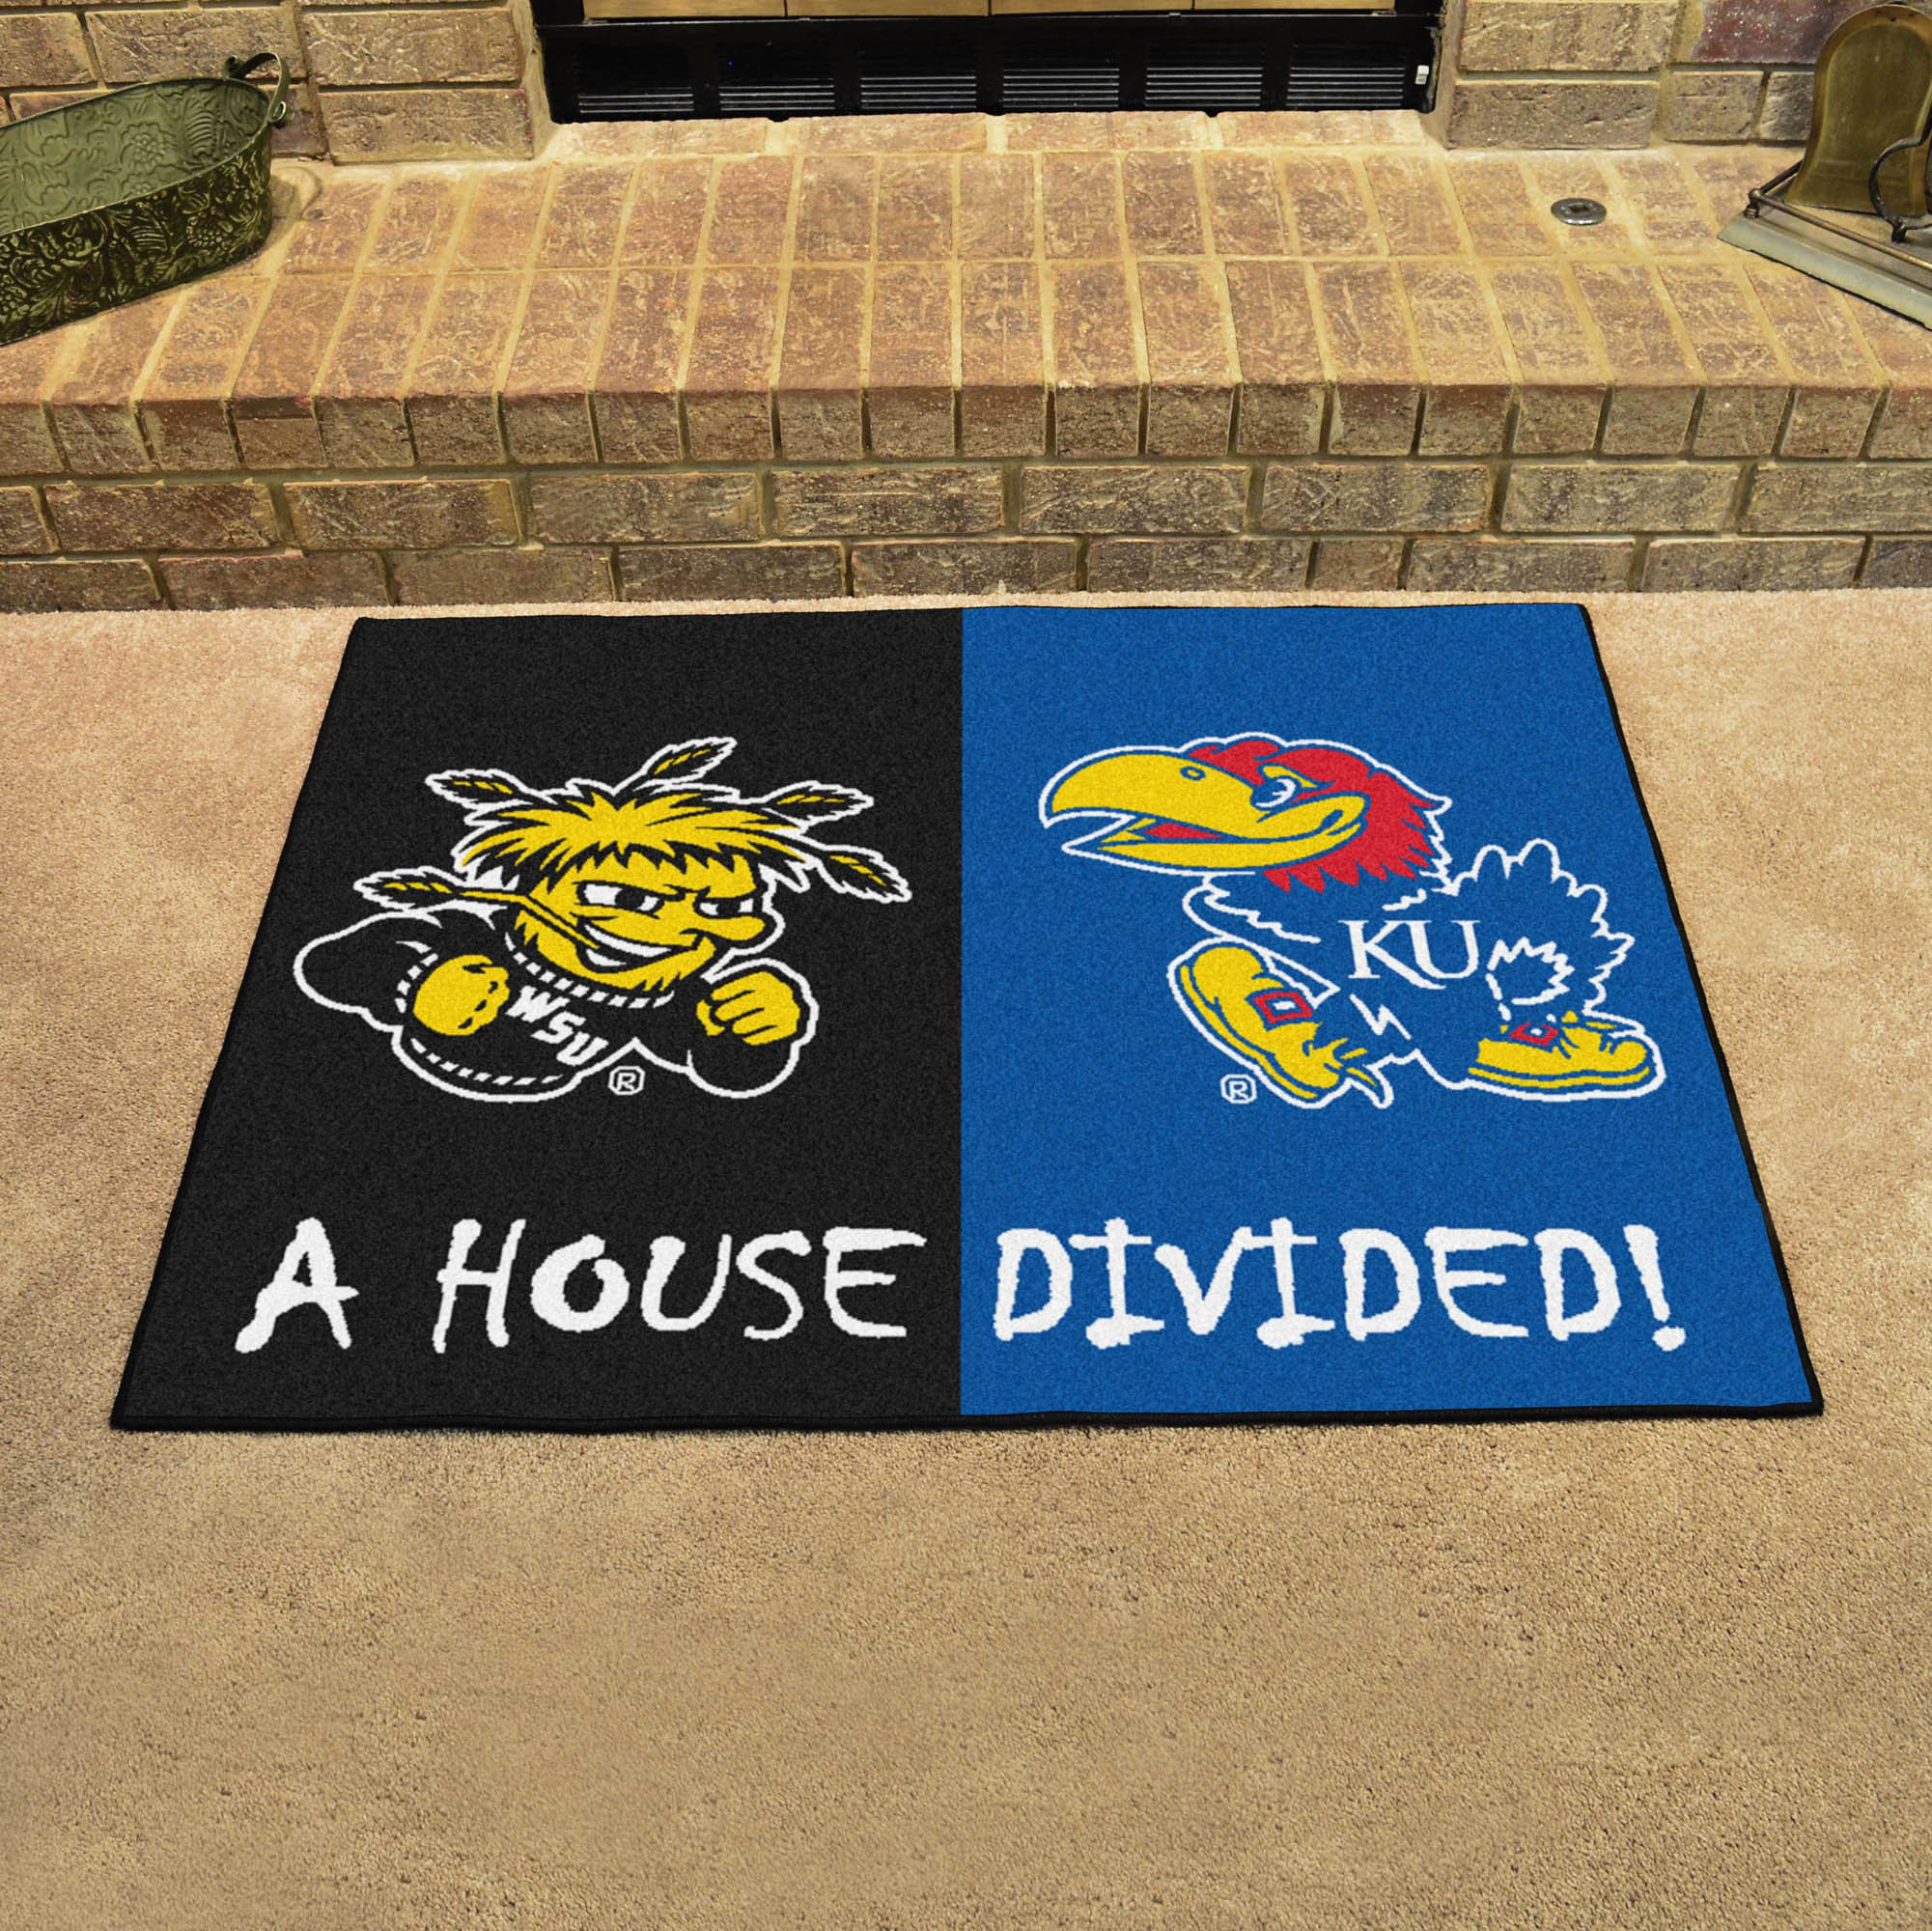 NCAA House Divided Rivalry Rug Wichita State Shockers - Kansas Jayhawks